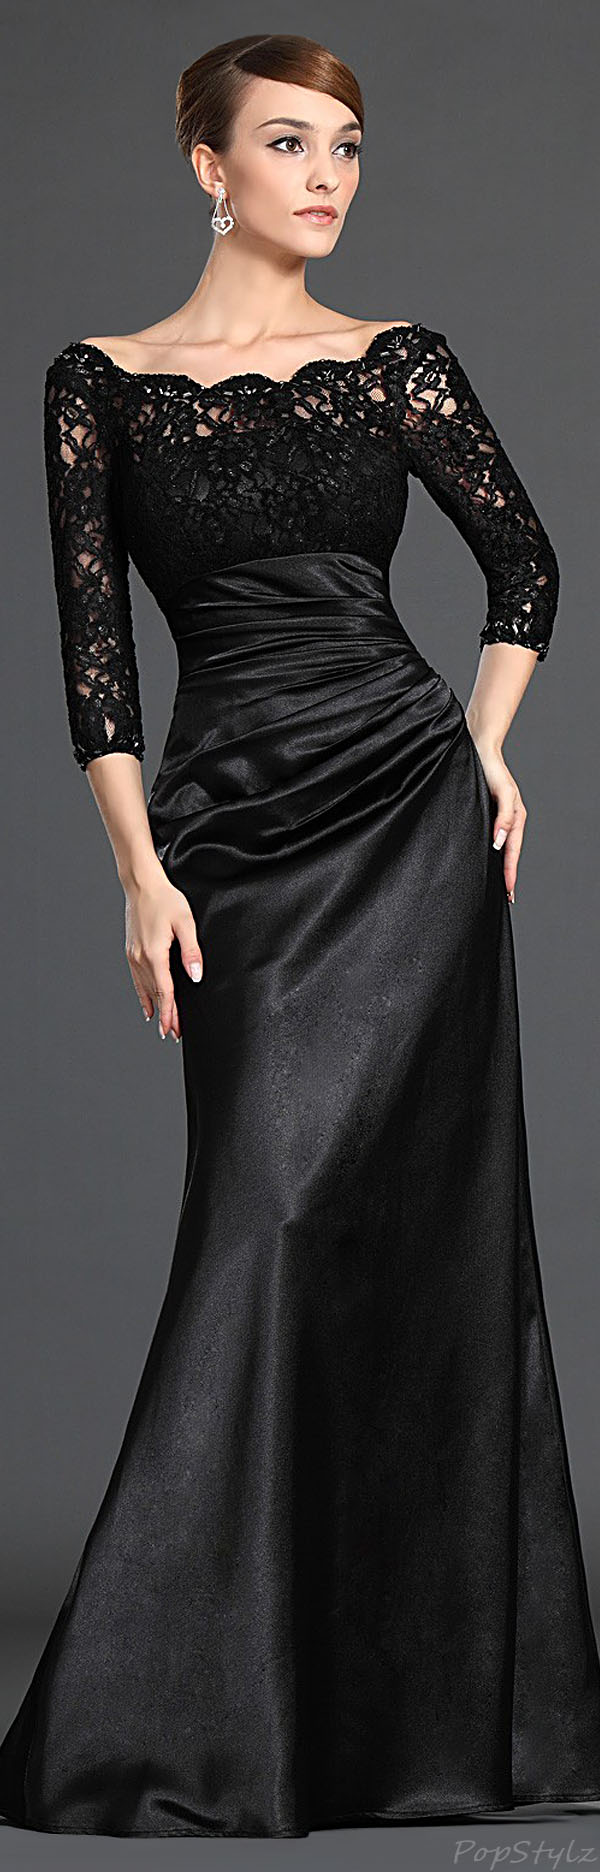 eDressit 26121800 Beads & Black Lace Gown